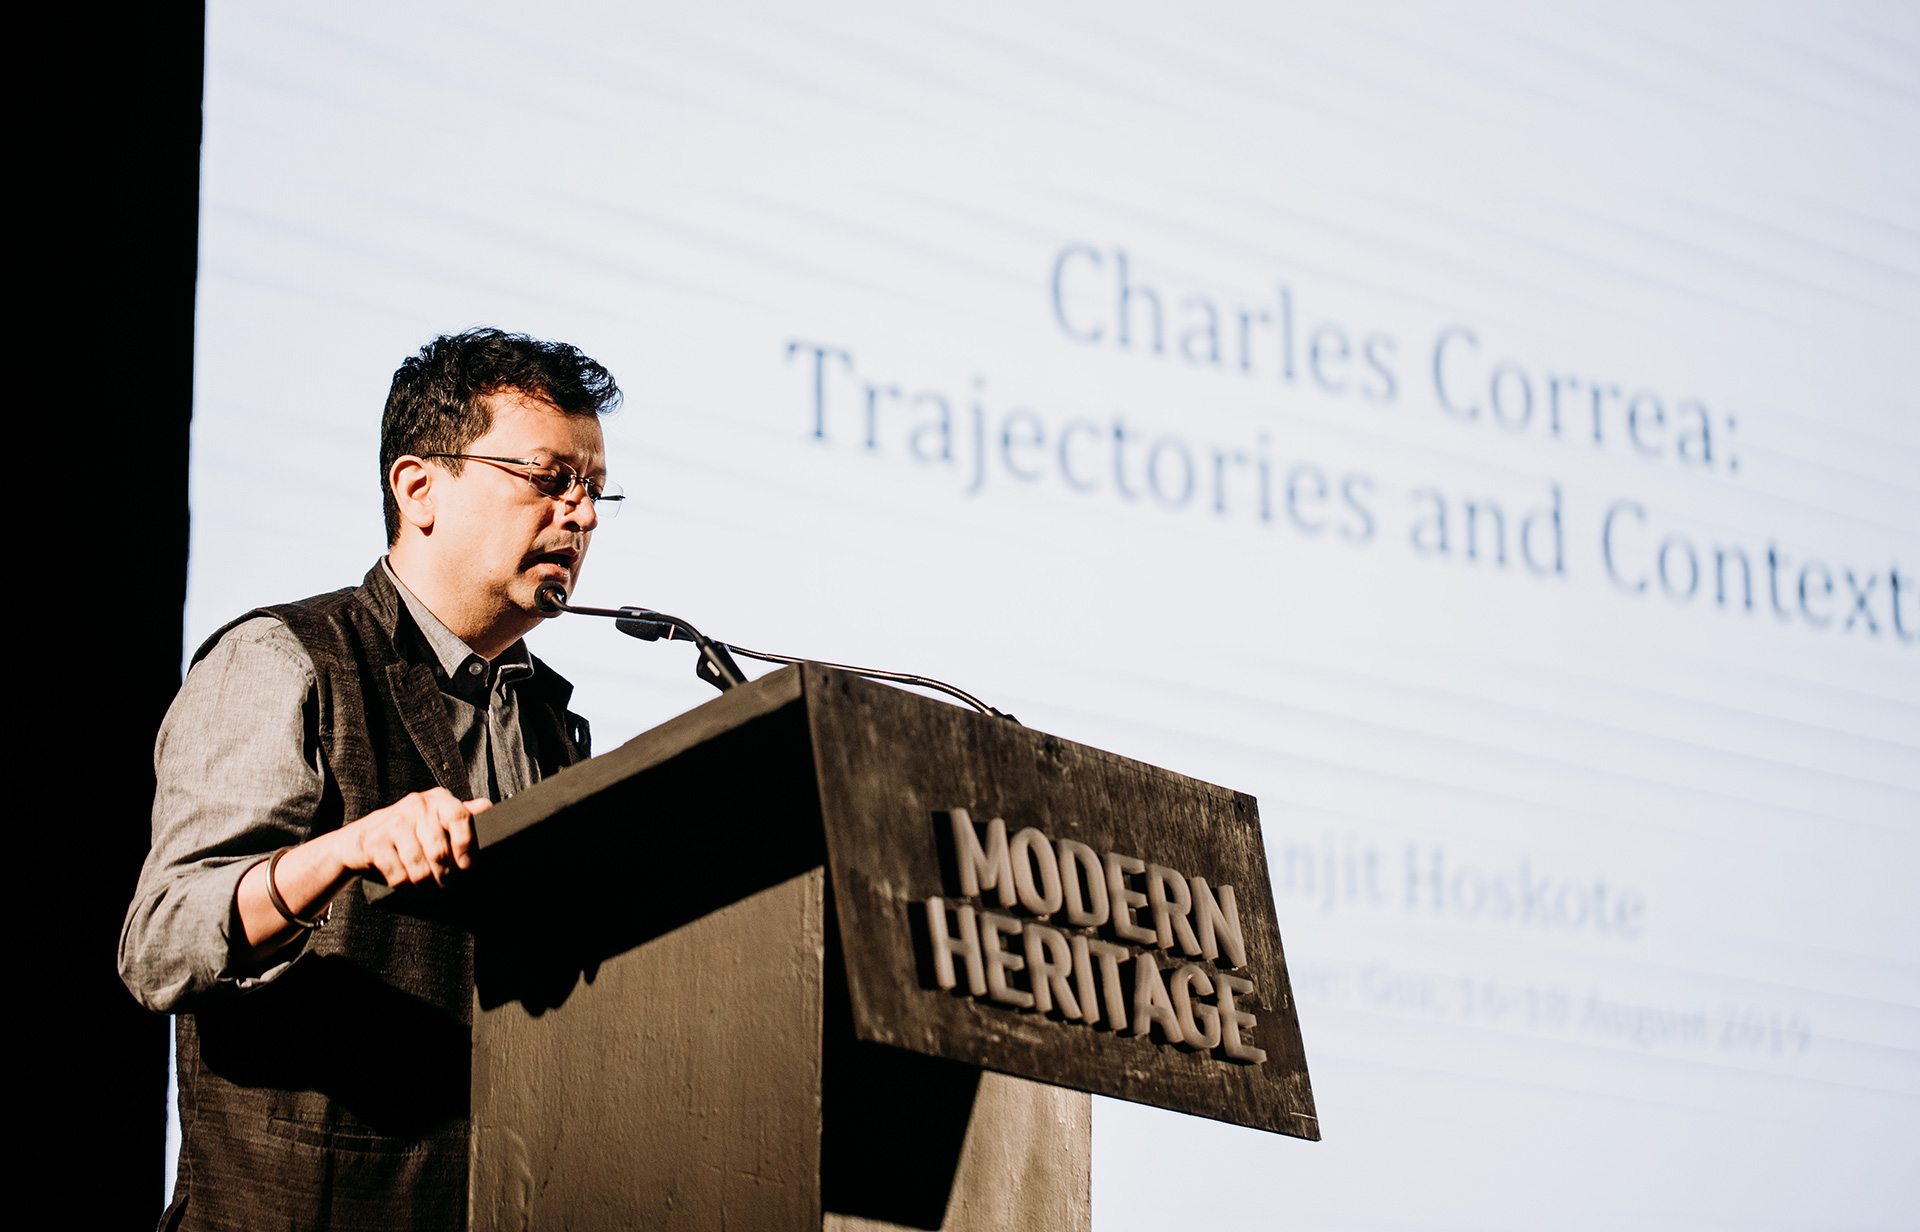 Ranjit Hoskote on the 'Works of Charles Correa' | Frame Conference | India | STIR